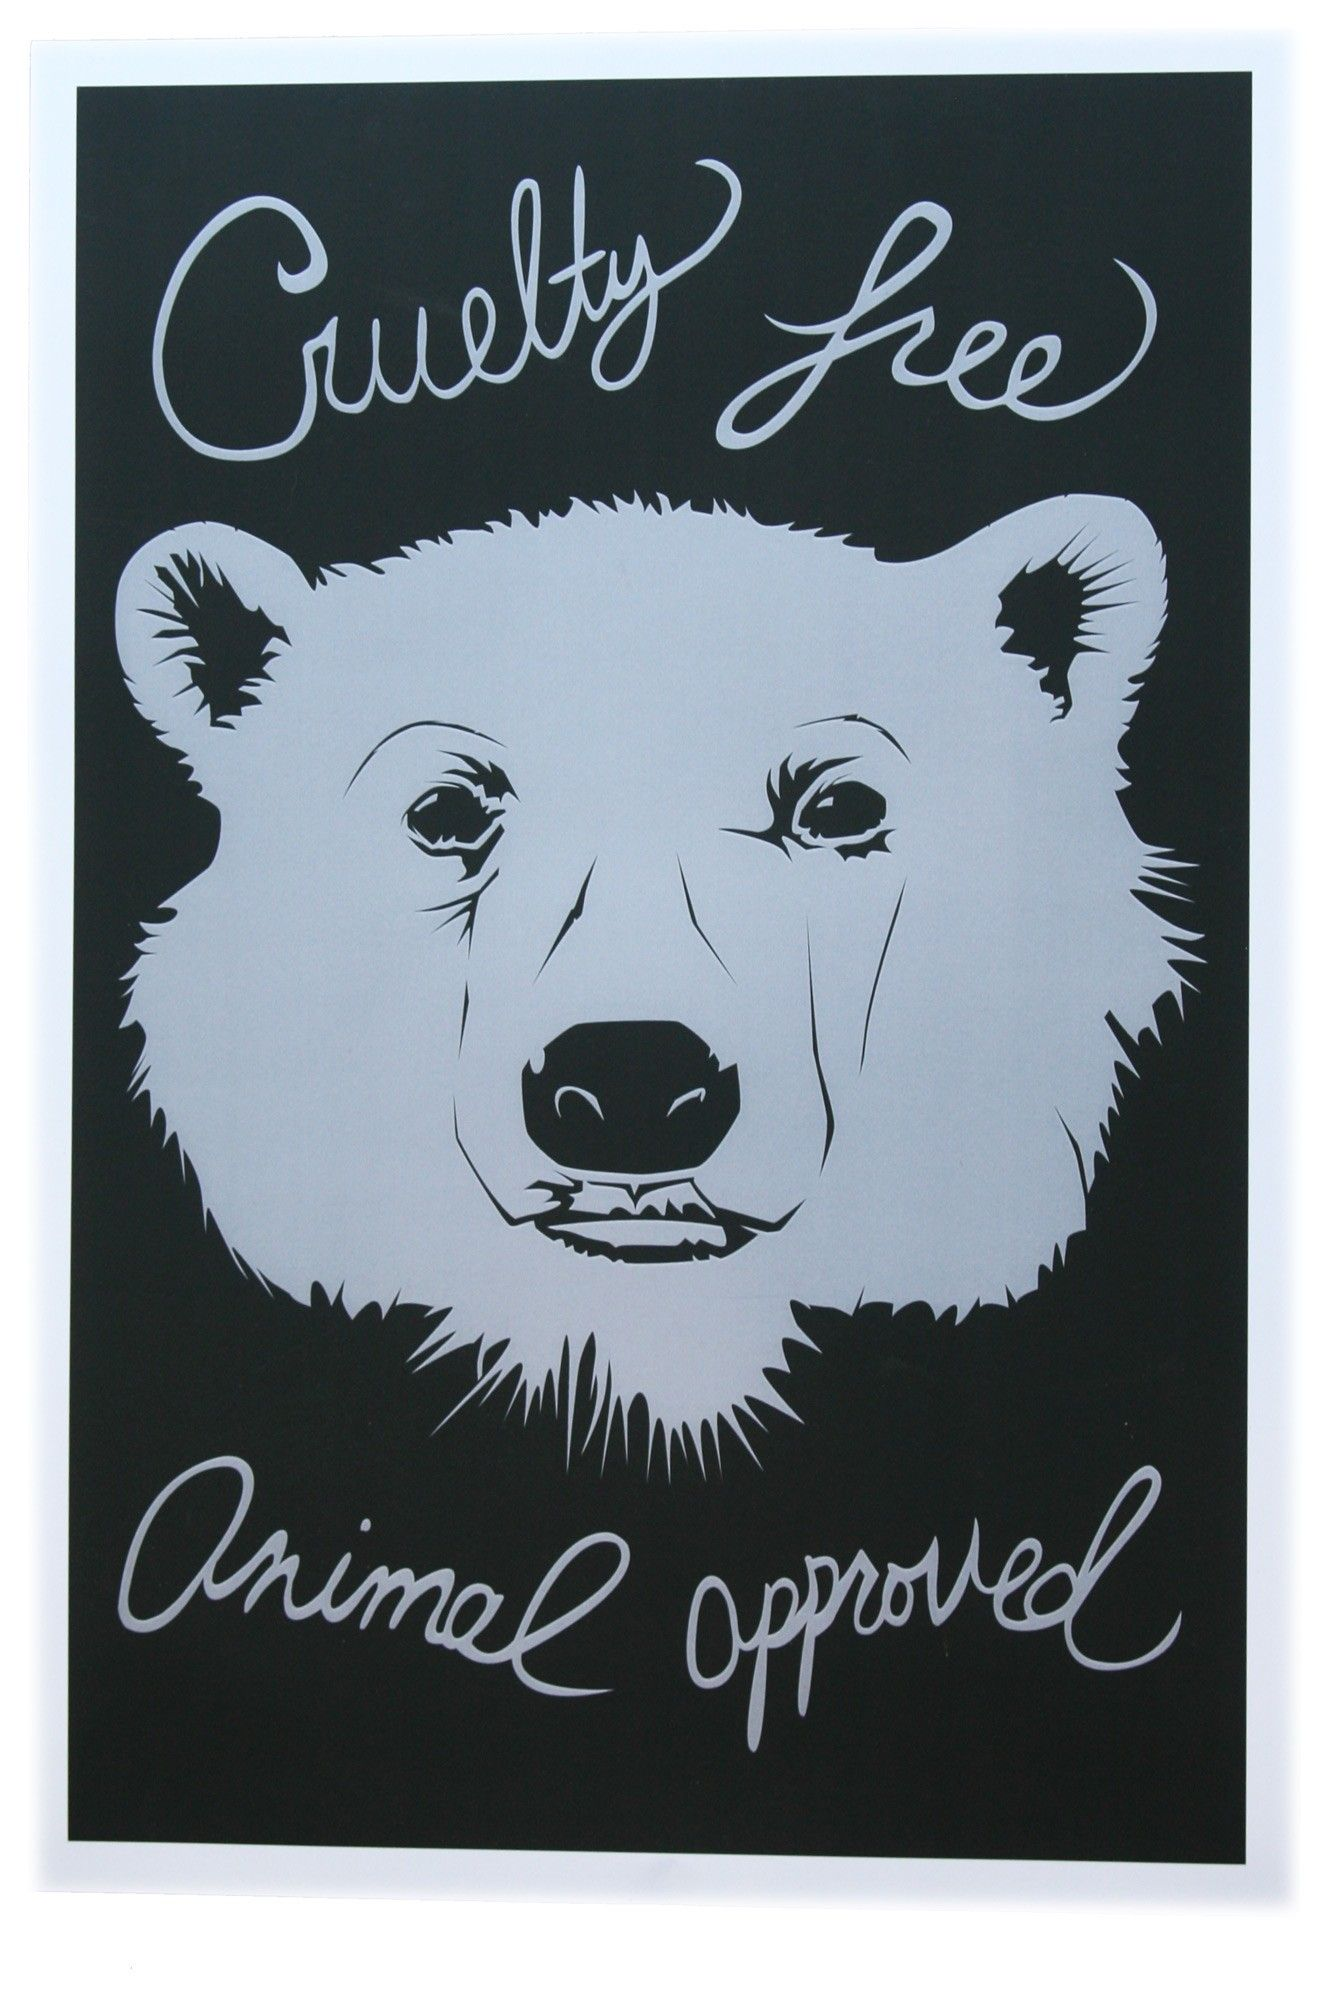 Cruelty Free Bear Poster Free poster, Poster, Cruelty free